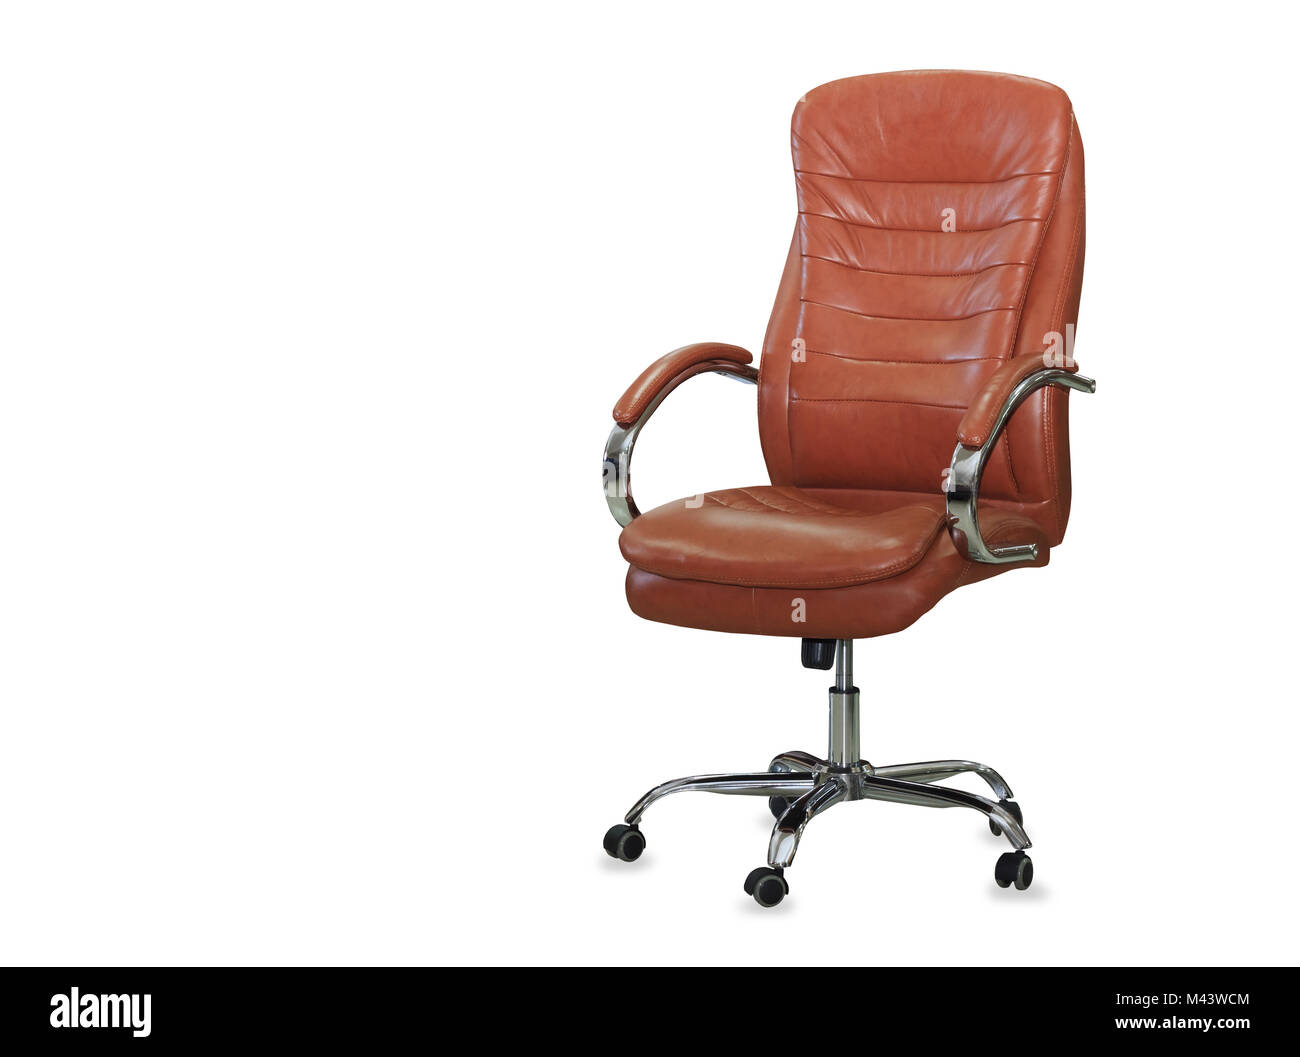 Modern Office Chair From Orange Leather. Isolated   Stock Image